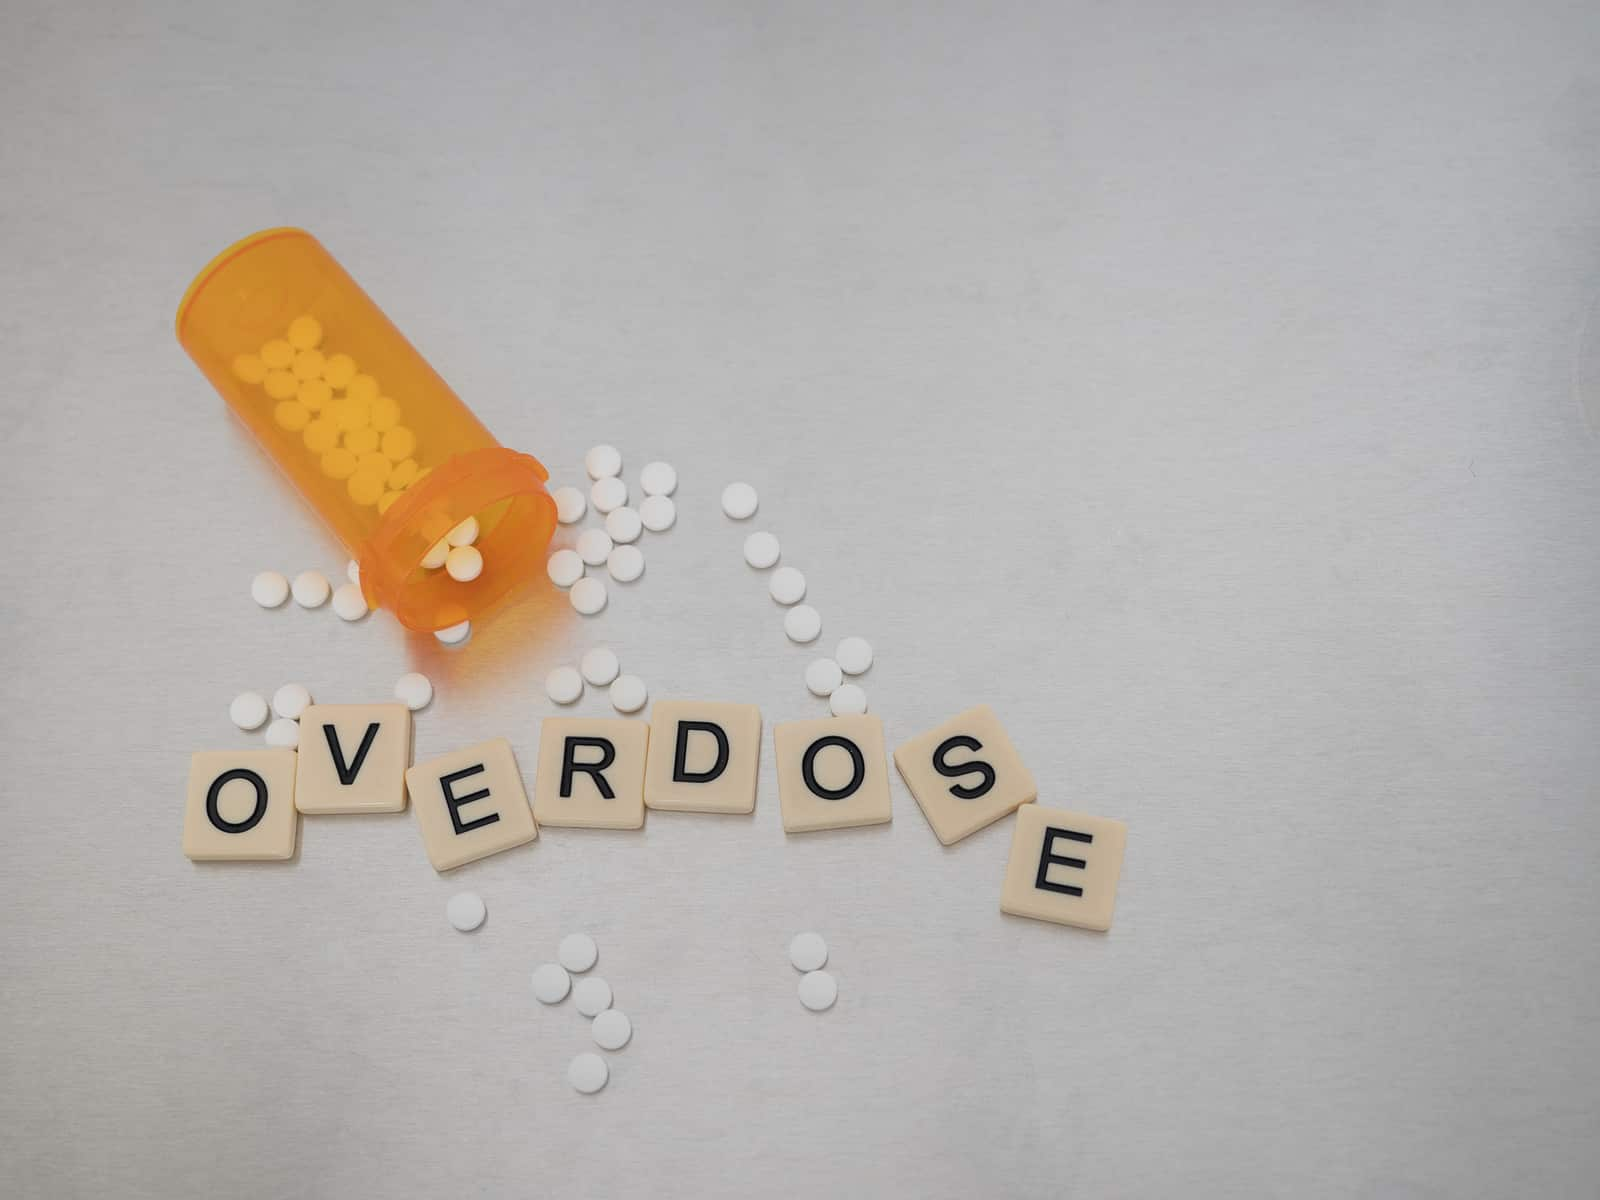 Overdose spelled with tile letters